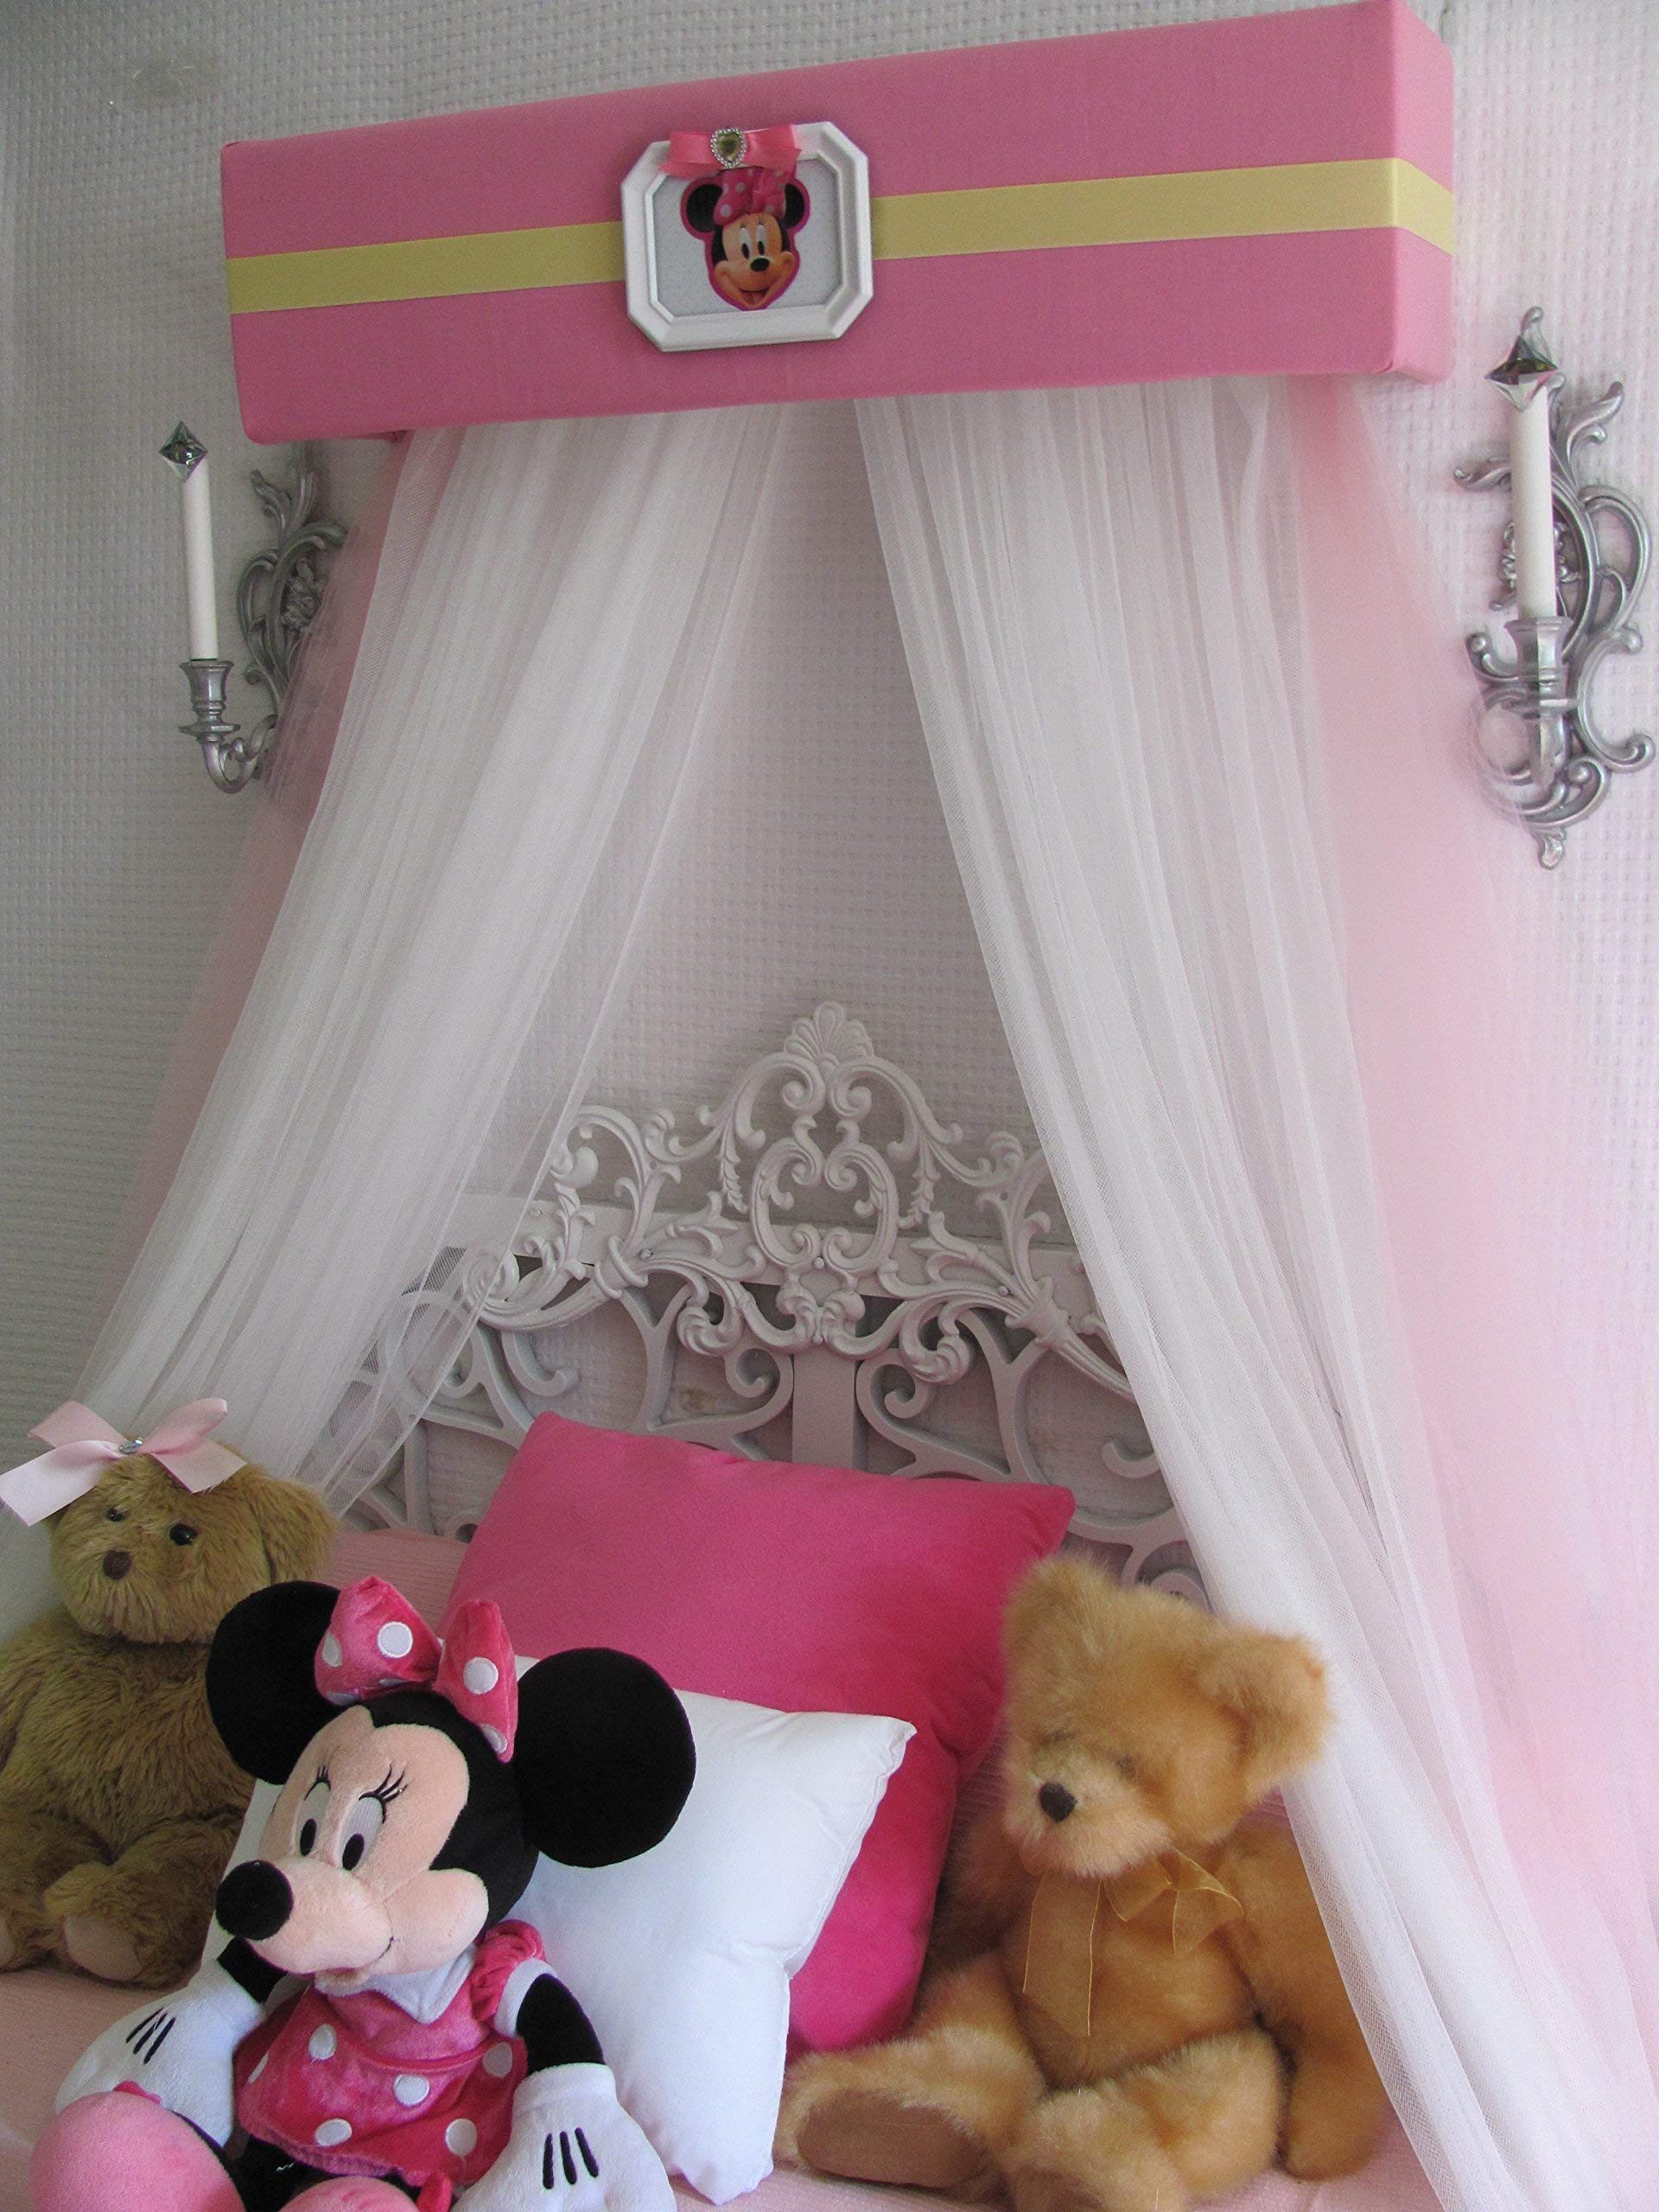 Disney Minnie Mouse Crib canopy cornice BED teester FULL Twin 30 inch Pink nursery So Zoey Boutique by So Zoey Boutique (Image #3)